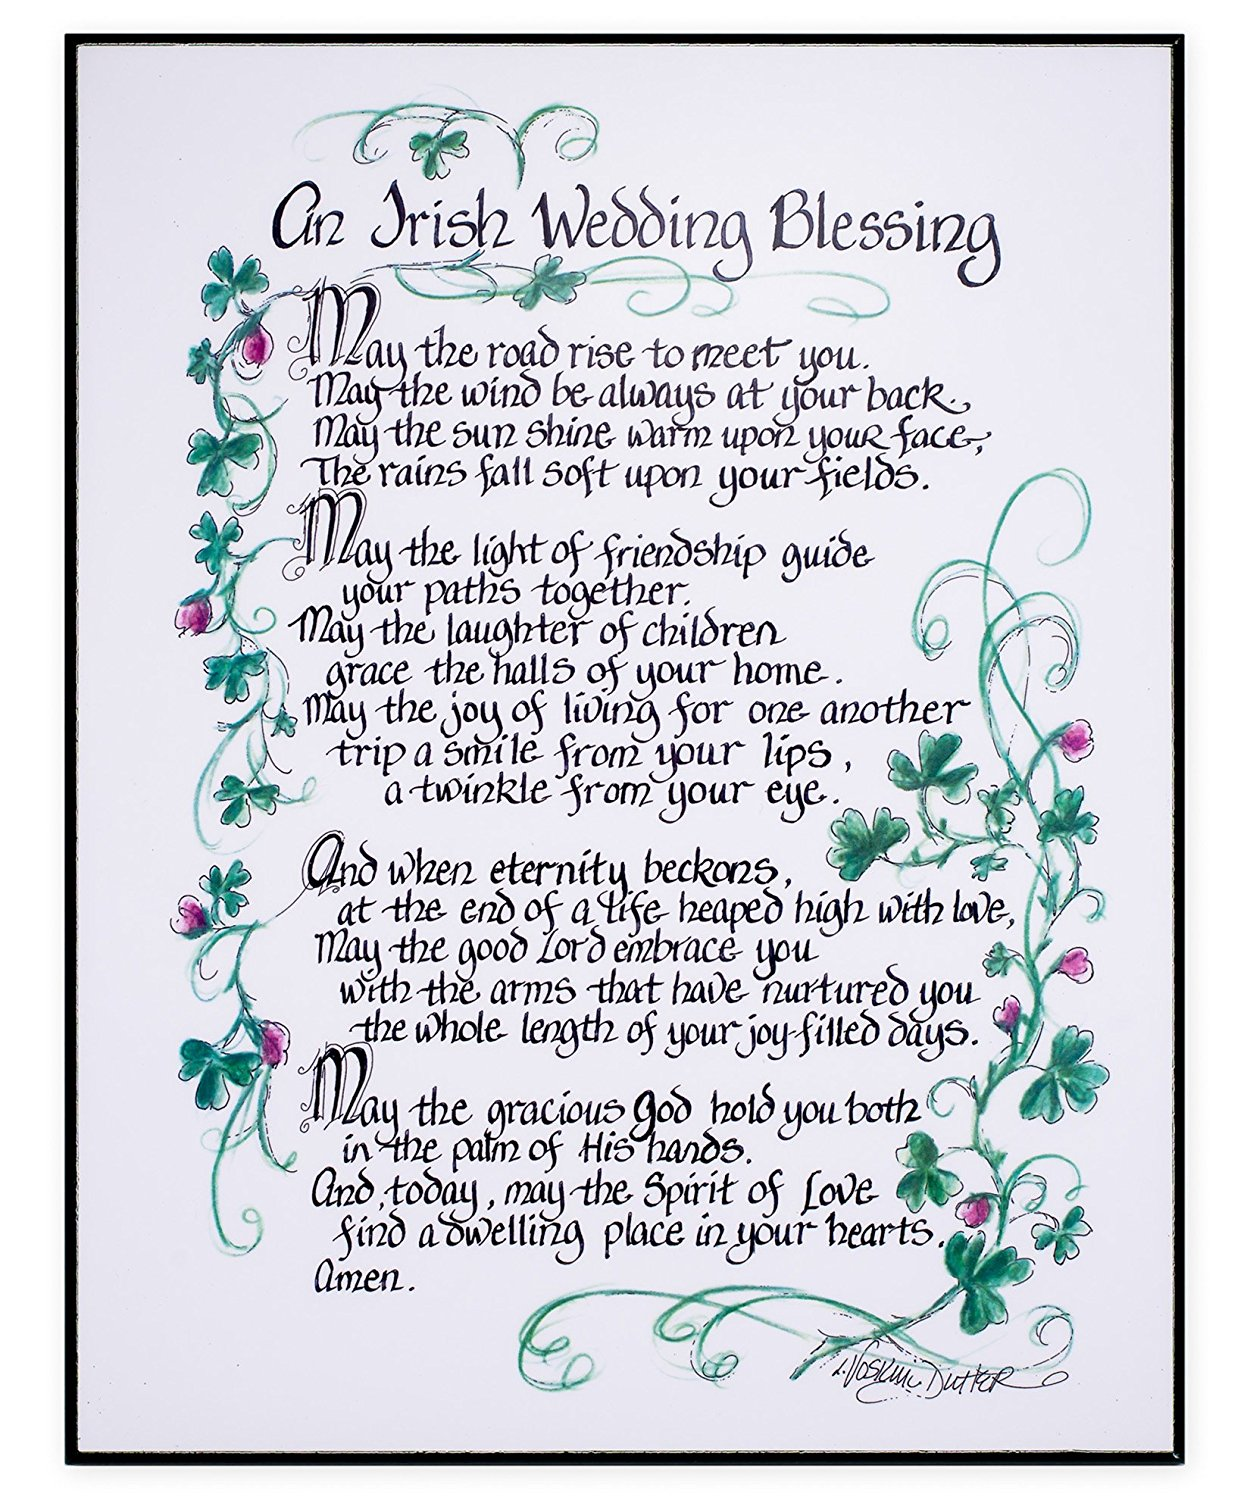 Irish Wedding Blessing Poem